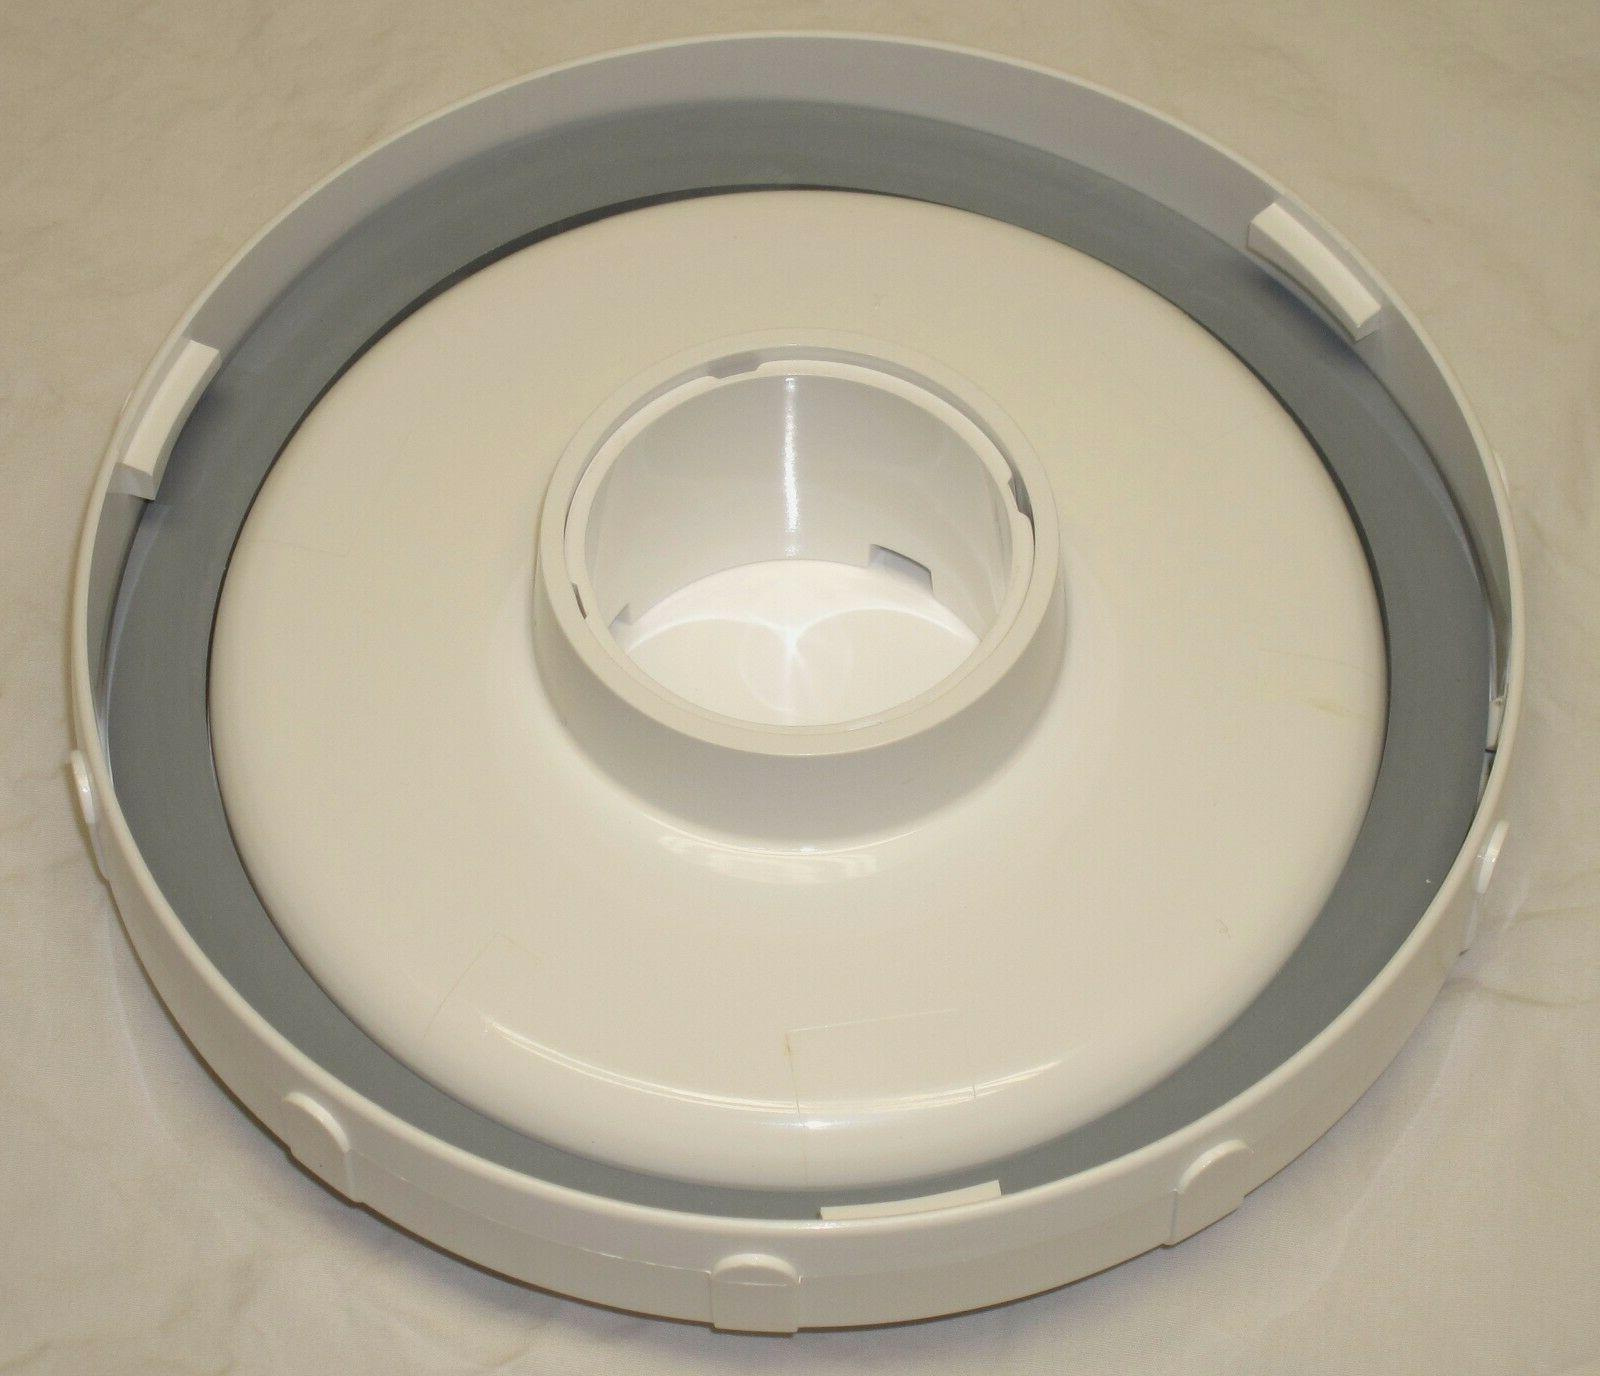 Lid with Cap and Washer for Blender